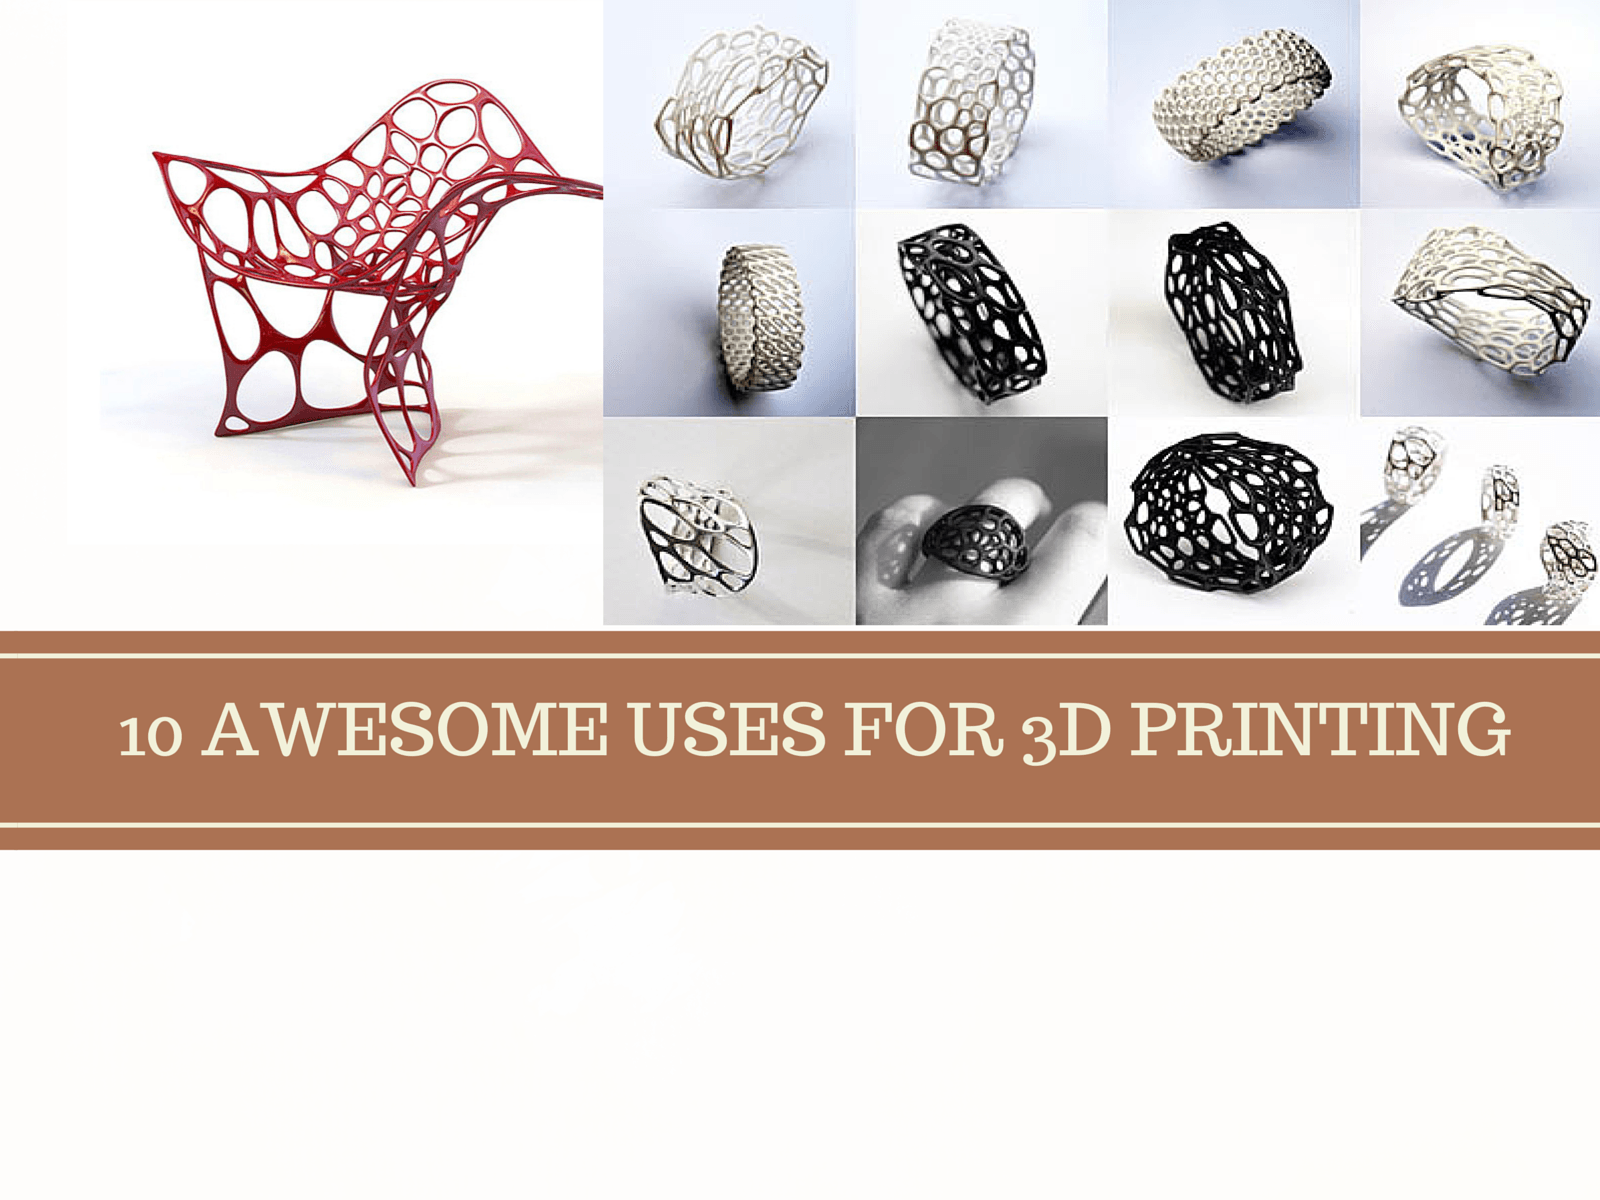 Wedding Gifts For Jiju : 10 AWESOME USES FOR 3D PRINTING - Augrav.com